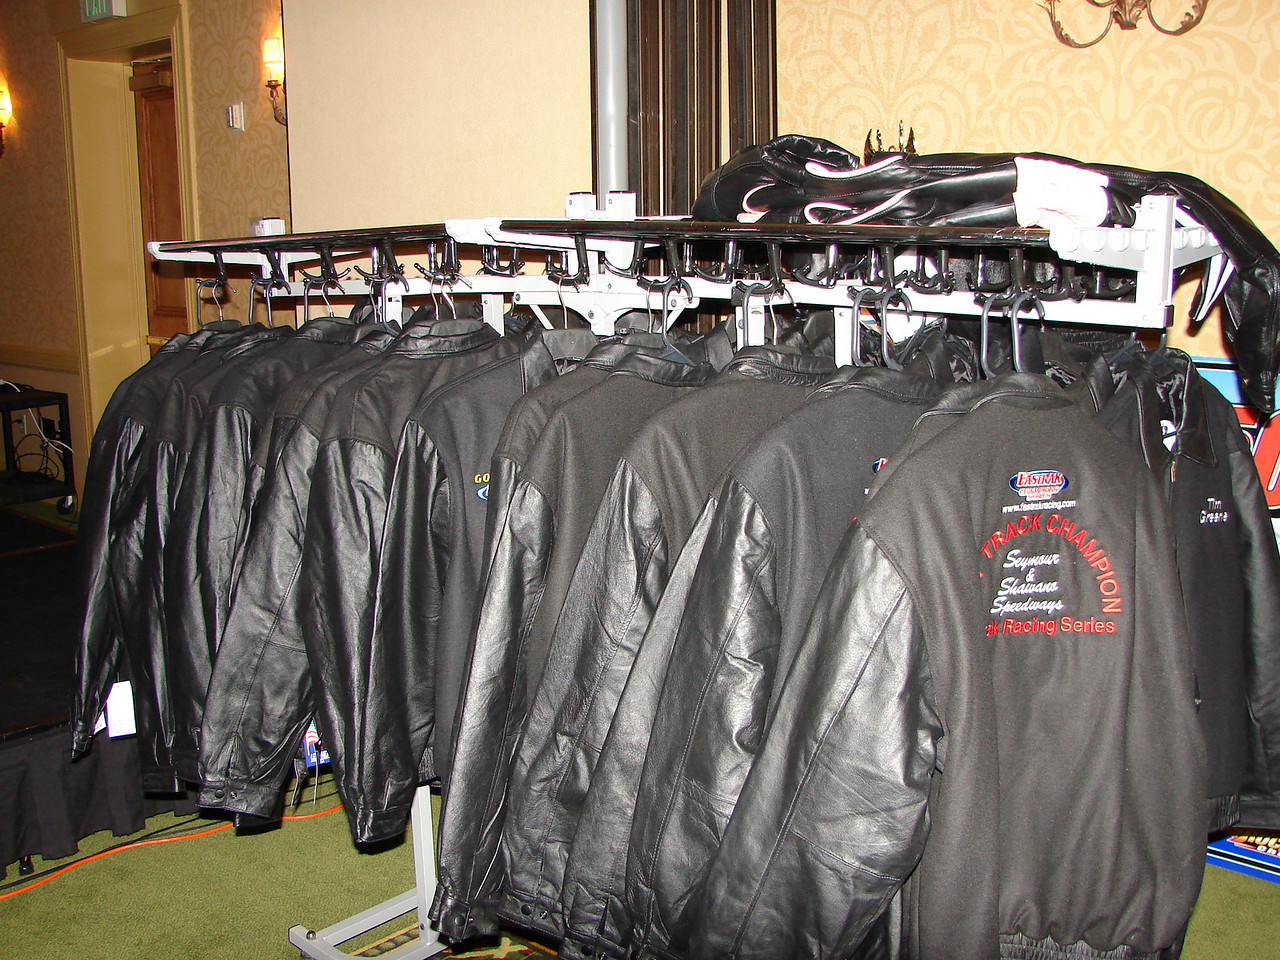 ...and jackets to be given out.